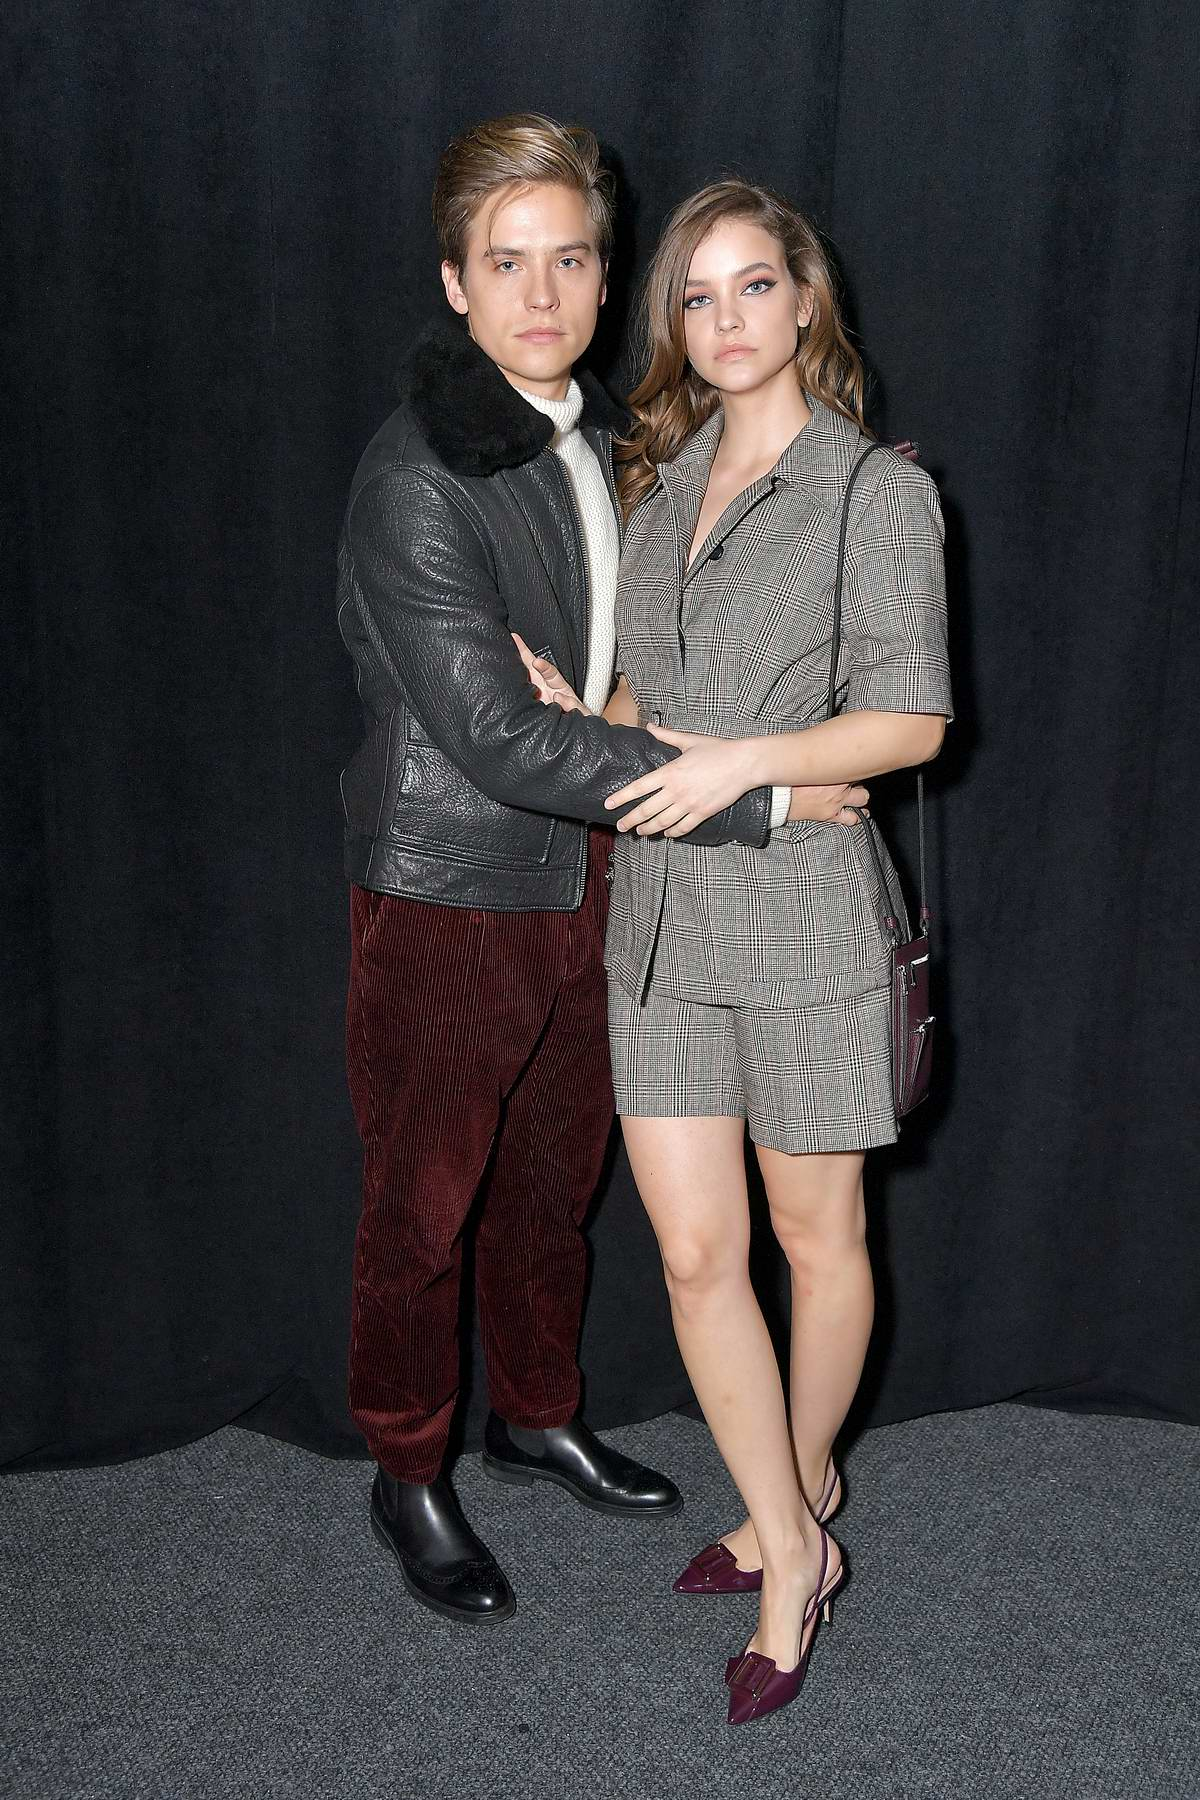 Barbara Palvin and Dylan Sprouse attends the BOSS Womenswear and Menswear fashion show during New York Fashion Week in New York City